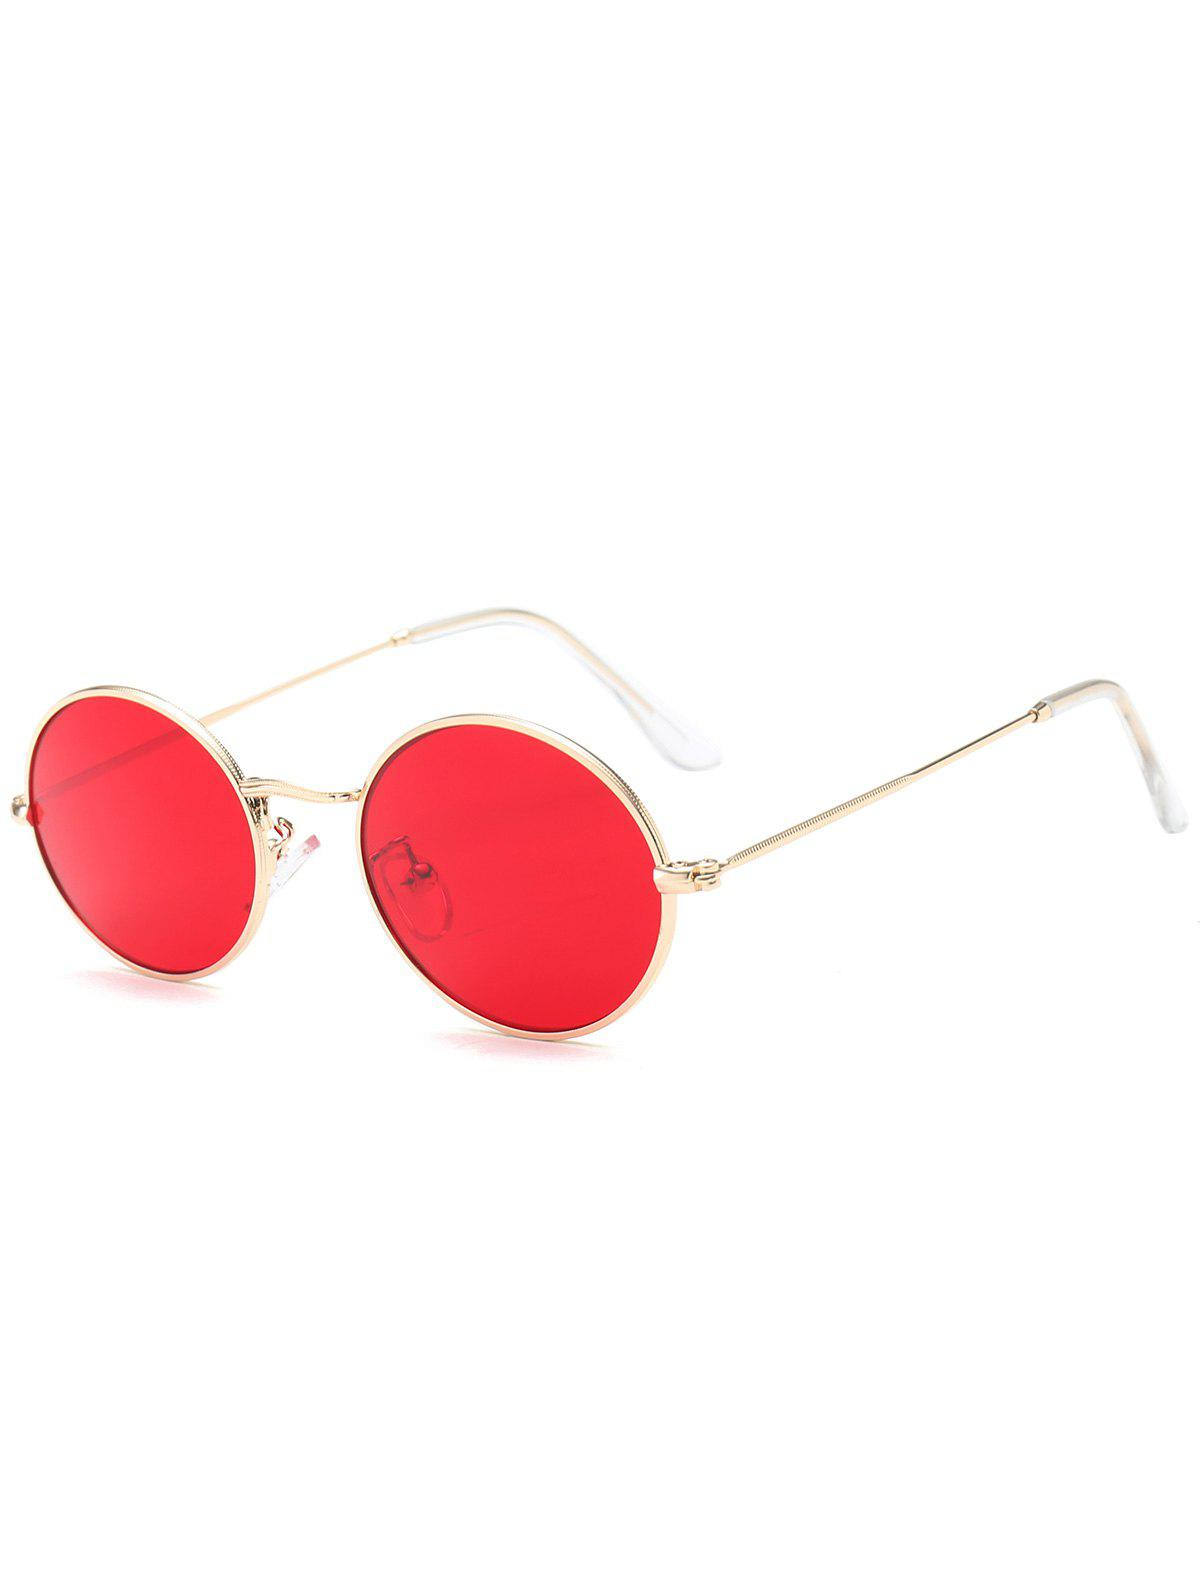 Oval Metal Frame Anti UV SunglassesACCESSORIES<br><br>Color: RED; Group: Adult; Gender: For Women; Style: Fashion; Shape: Oval; Lens material: Resin; Frame material: Other; Frame Color: Gold; Lens height: 4.2CM; Lens width: 5.1CM; Temple Length: 14.0CM; Nose: 1.6CM; Frame Length: 13.0CM; Weight: 0.0900kg; Package Contents: 1 x Sunglasses;